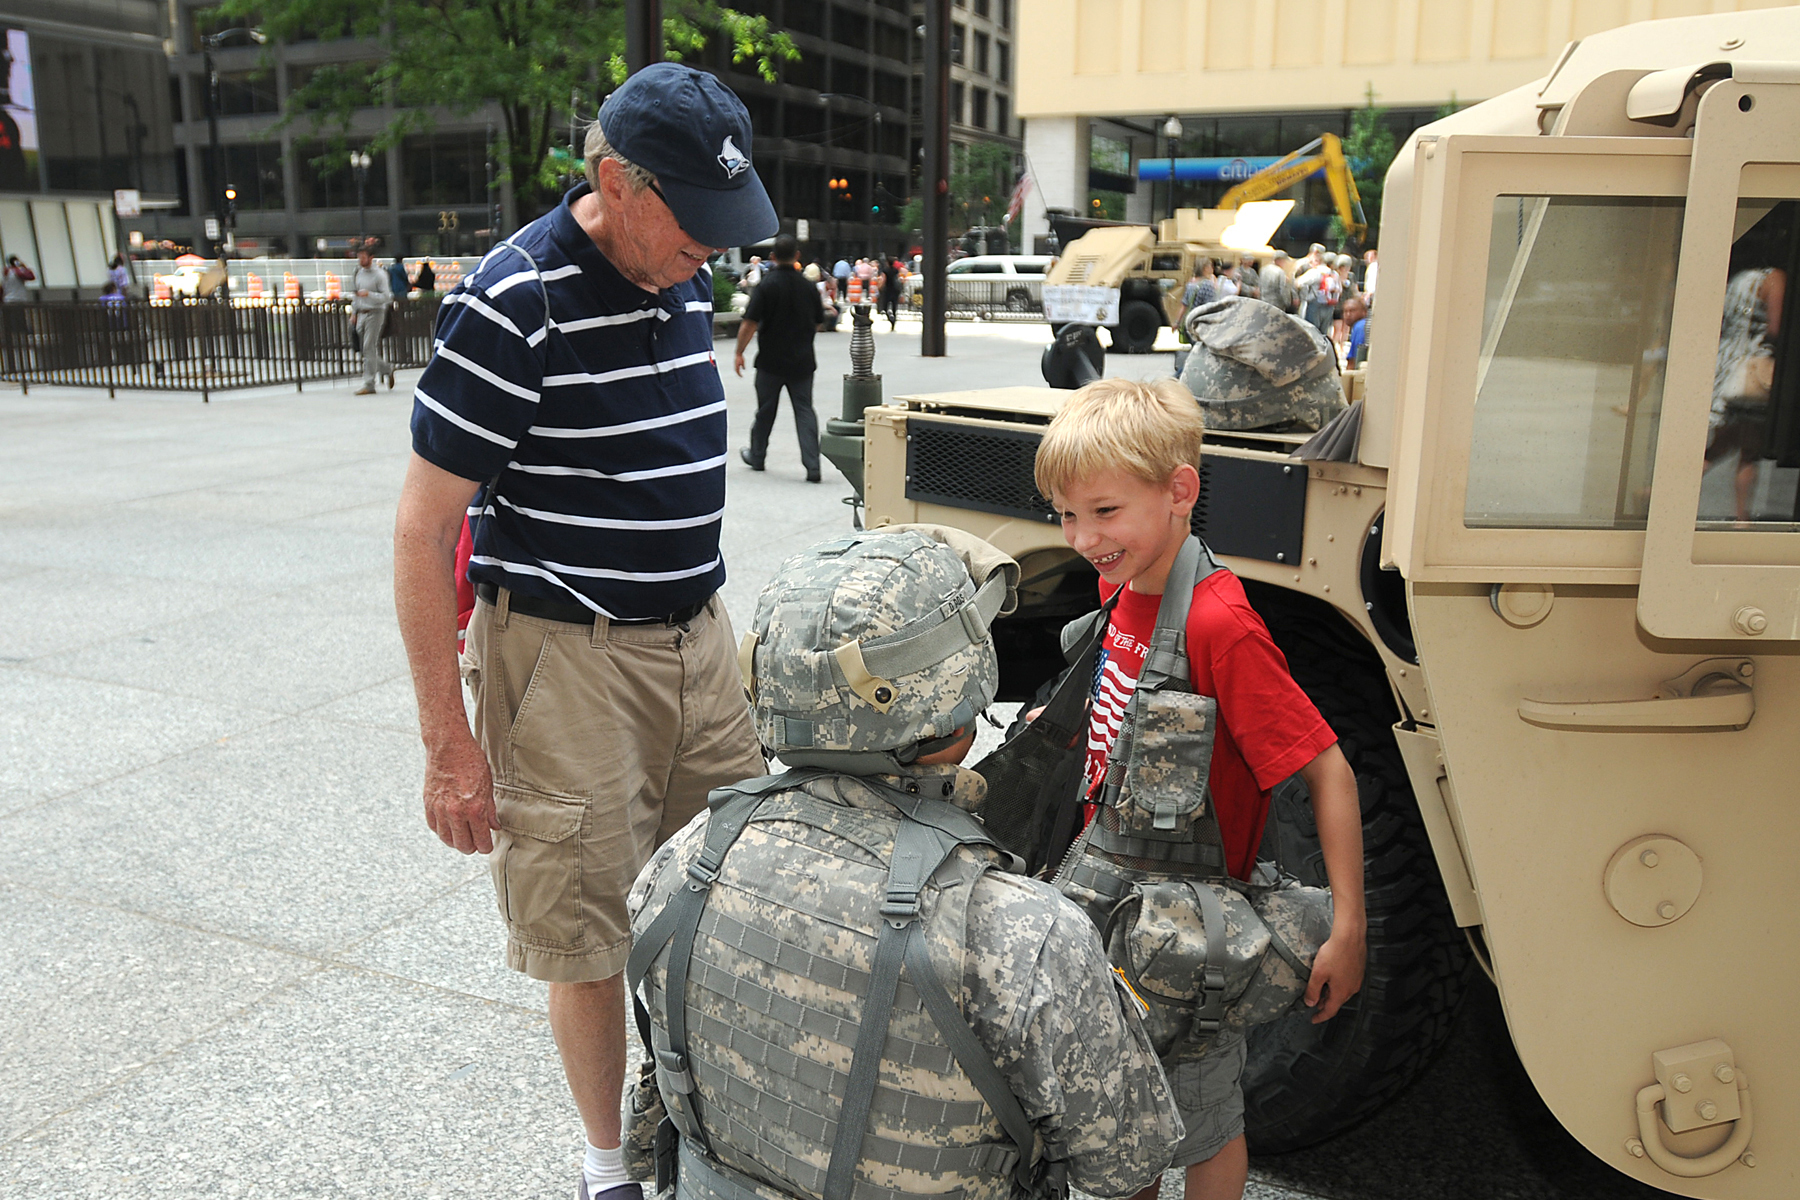 File:Army Reserve soldier gears up child for the Army's